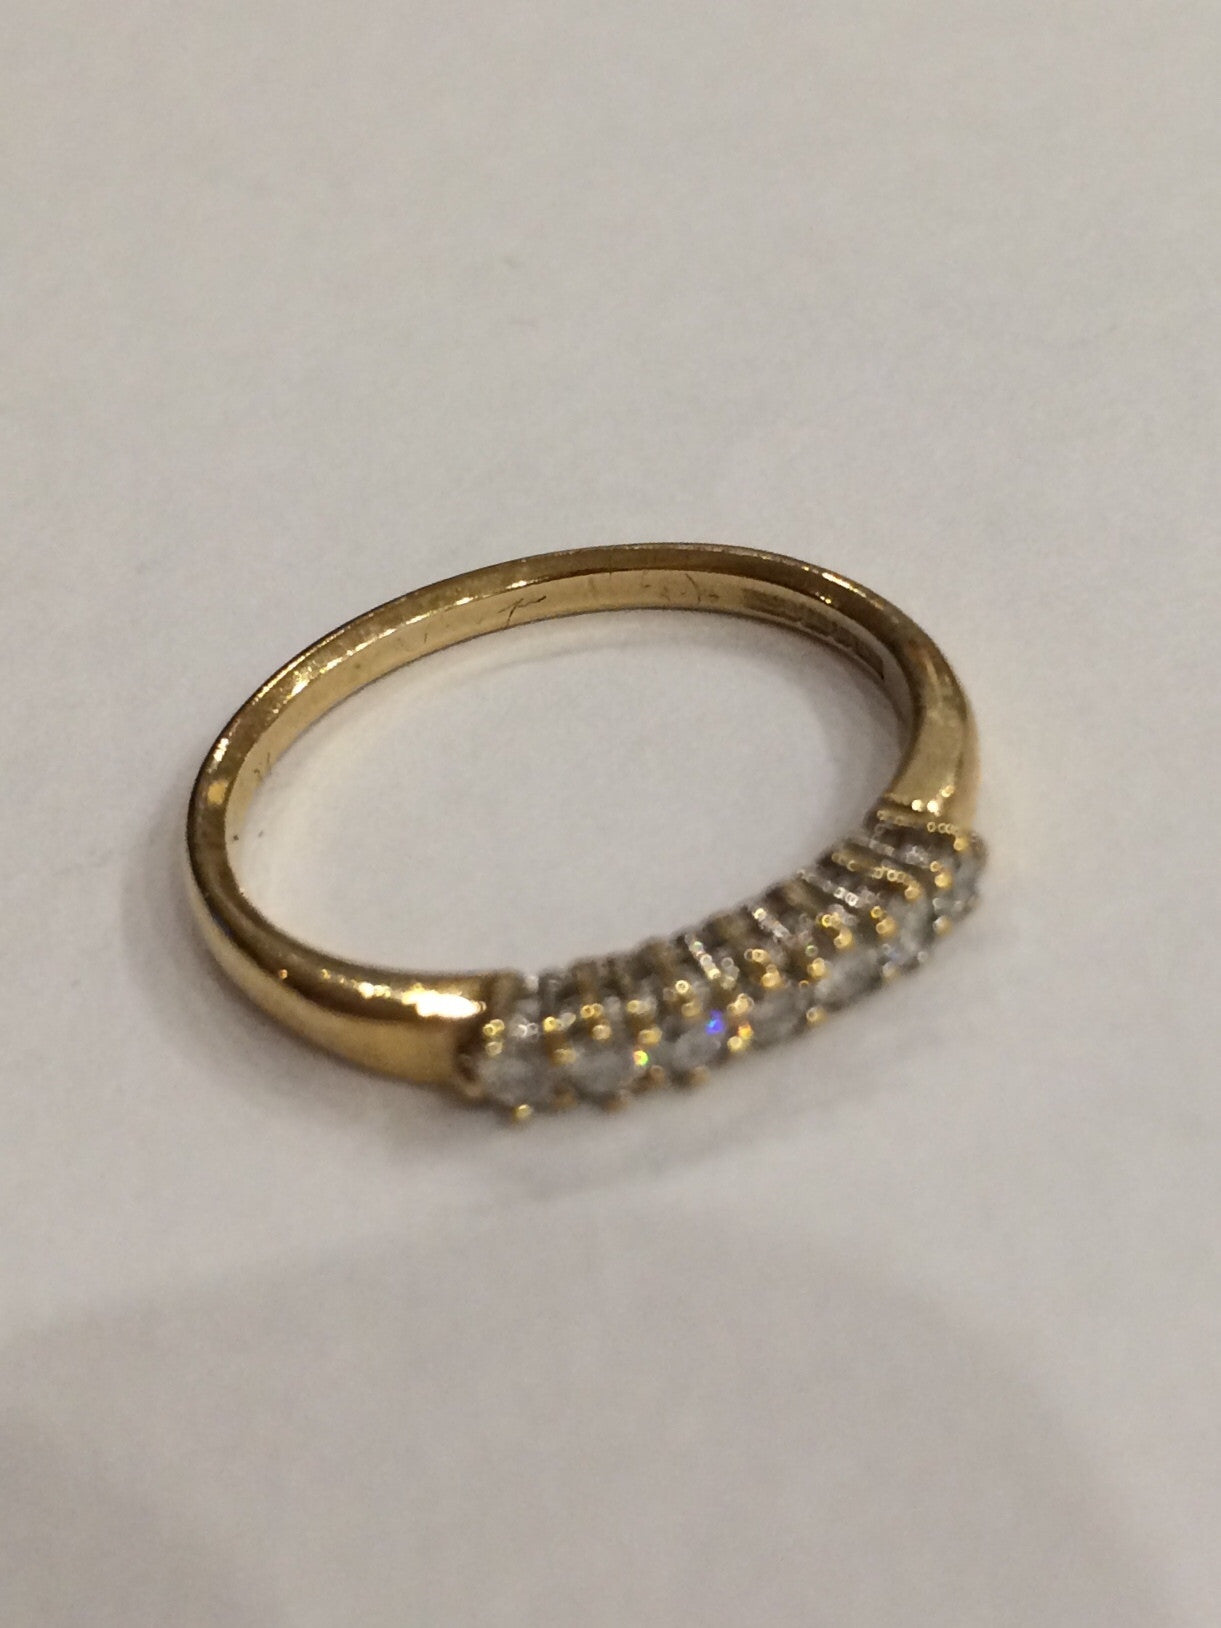 9CT YELLOW GOLD 0.10CTS CLAW SET ETERNITY RING - Robert Openshaw Fine Jewellery